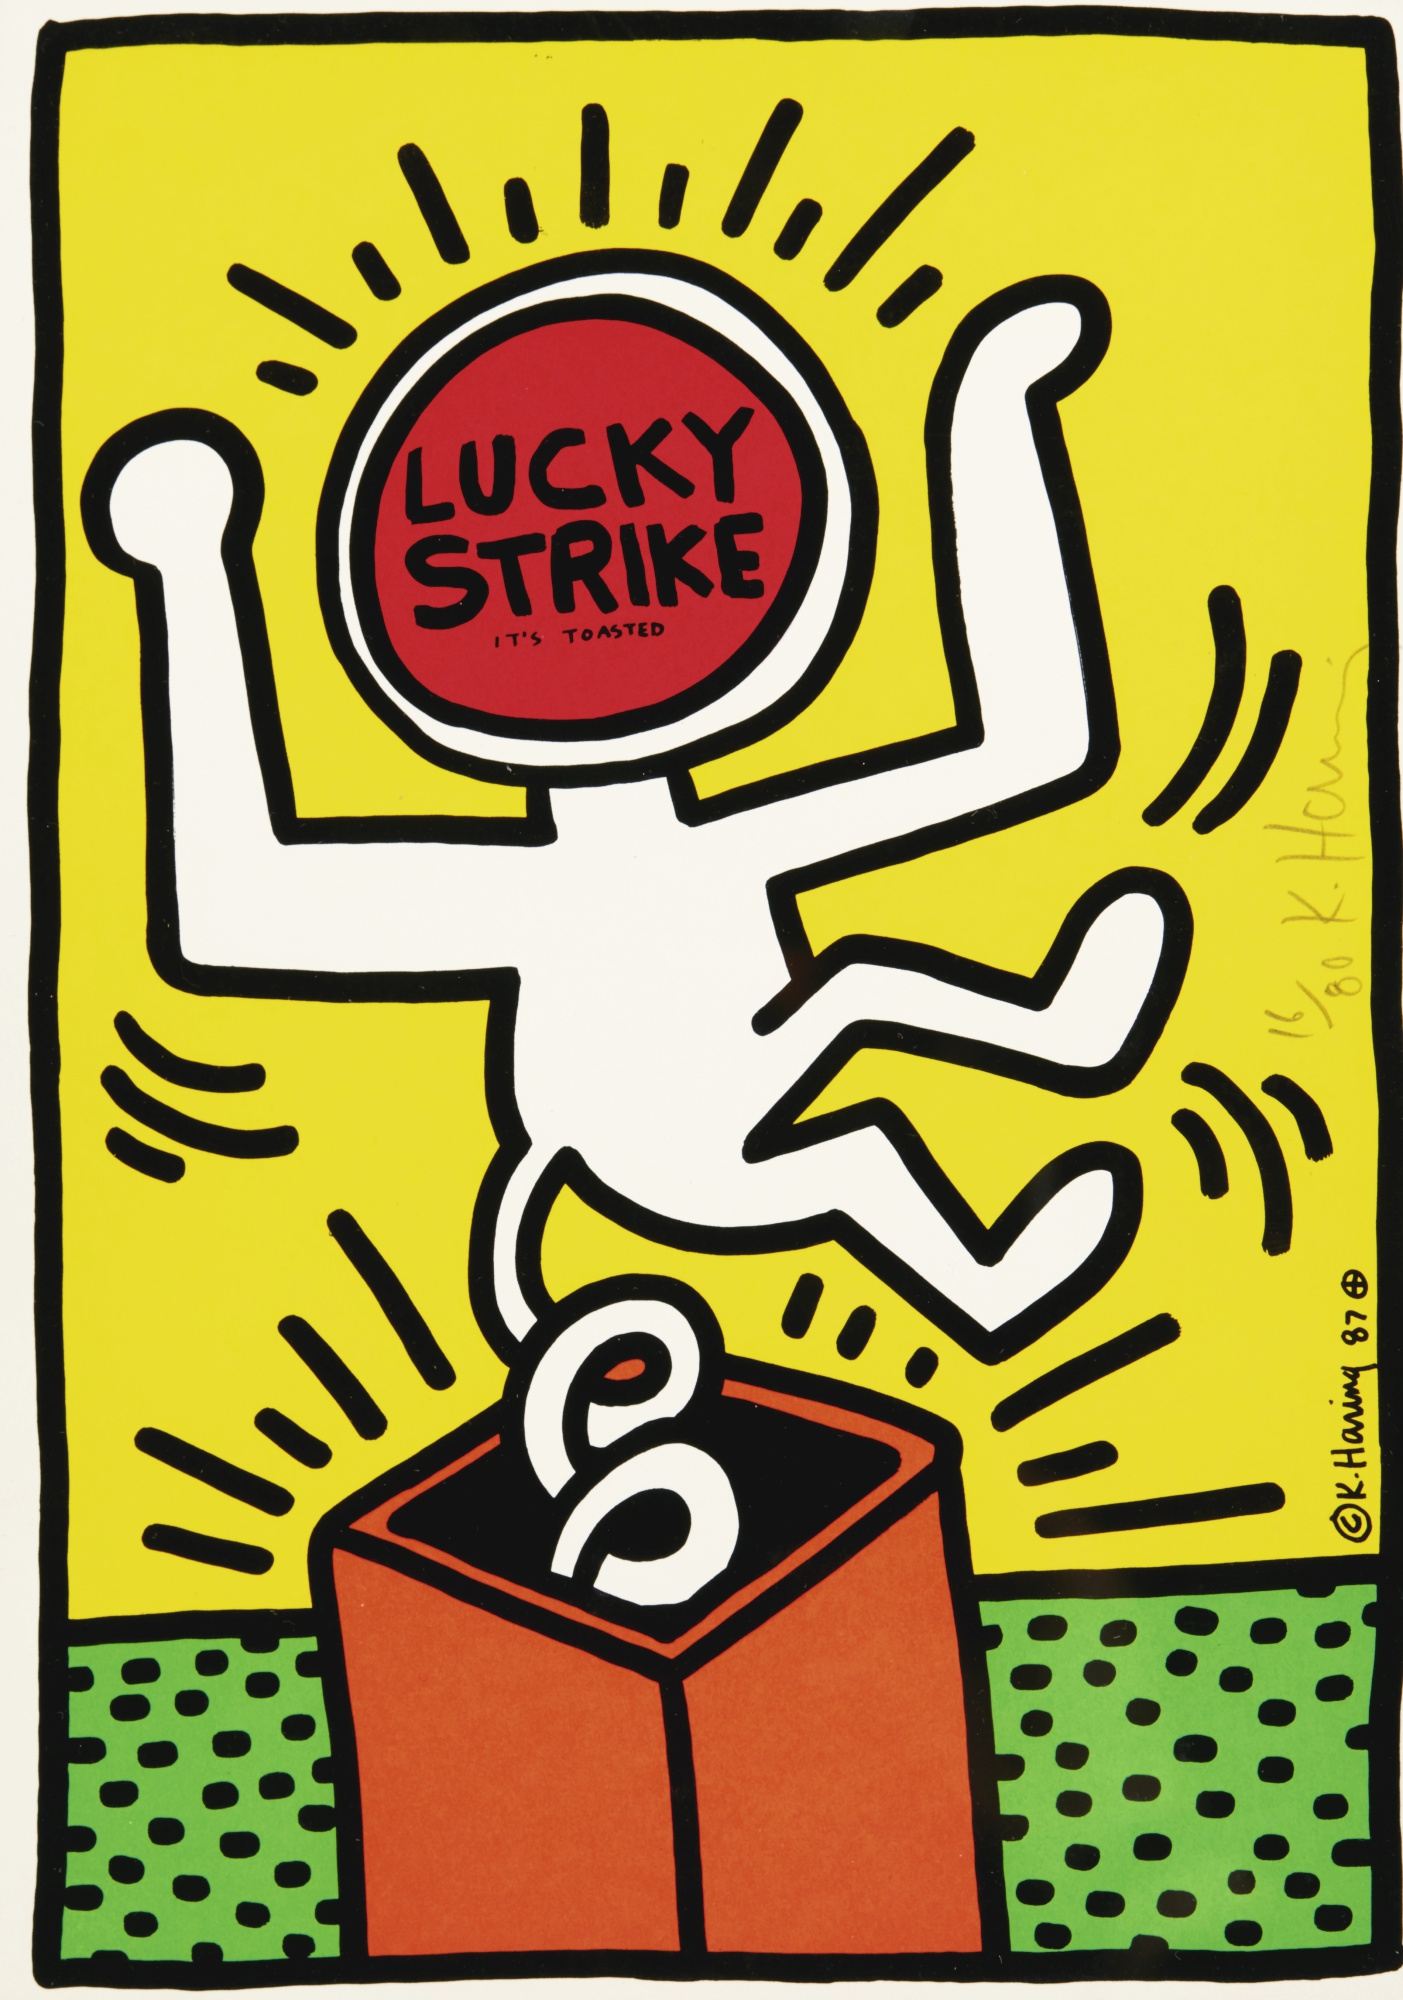 Keith Haring-Lucky Strike: One Plate (Littmann P. 78)-1987